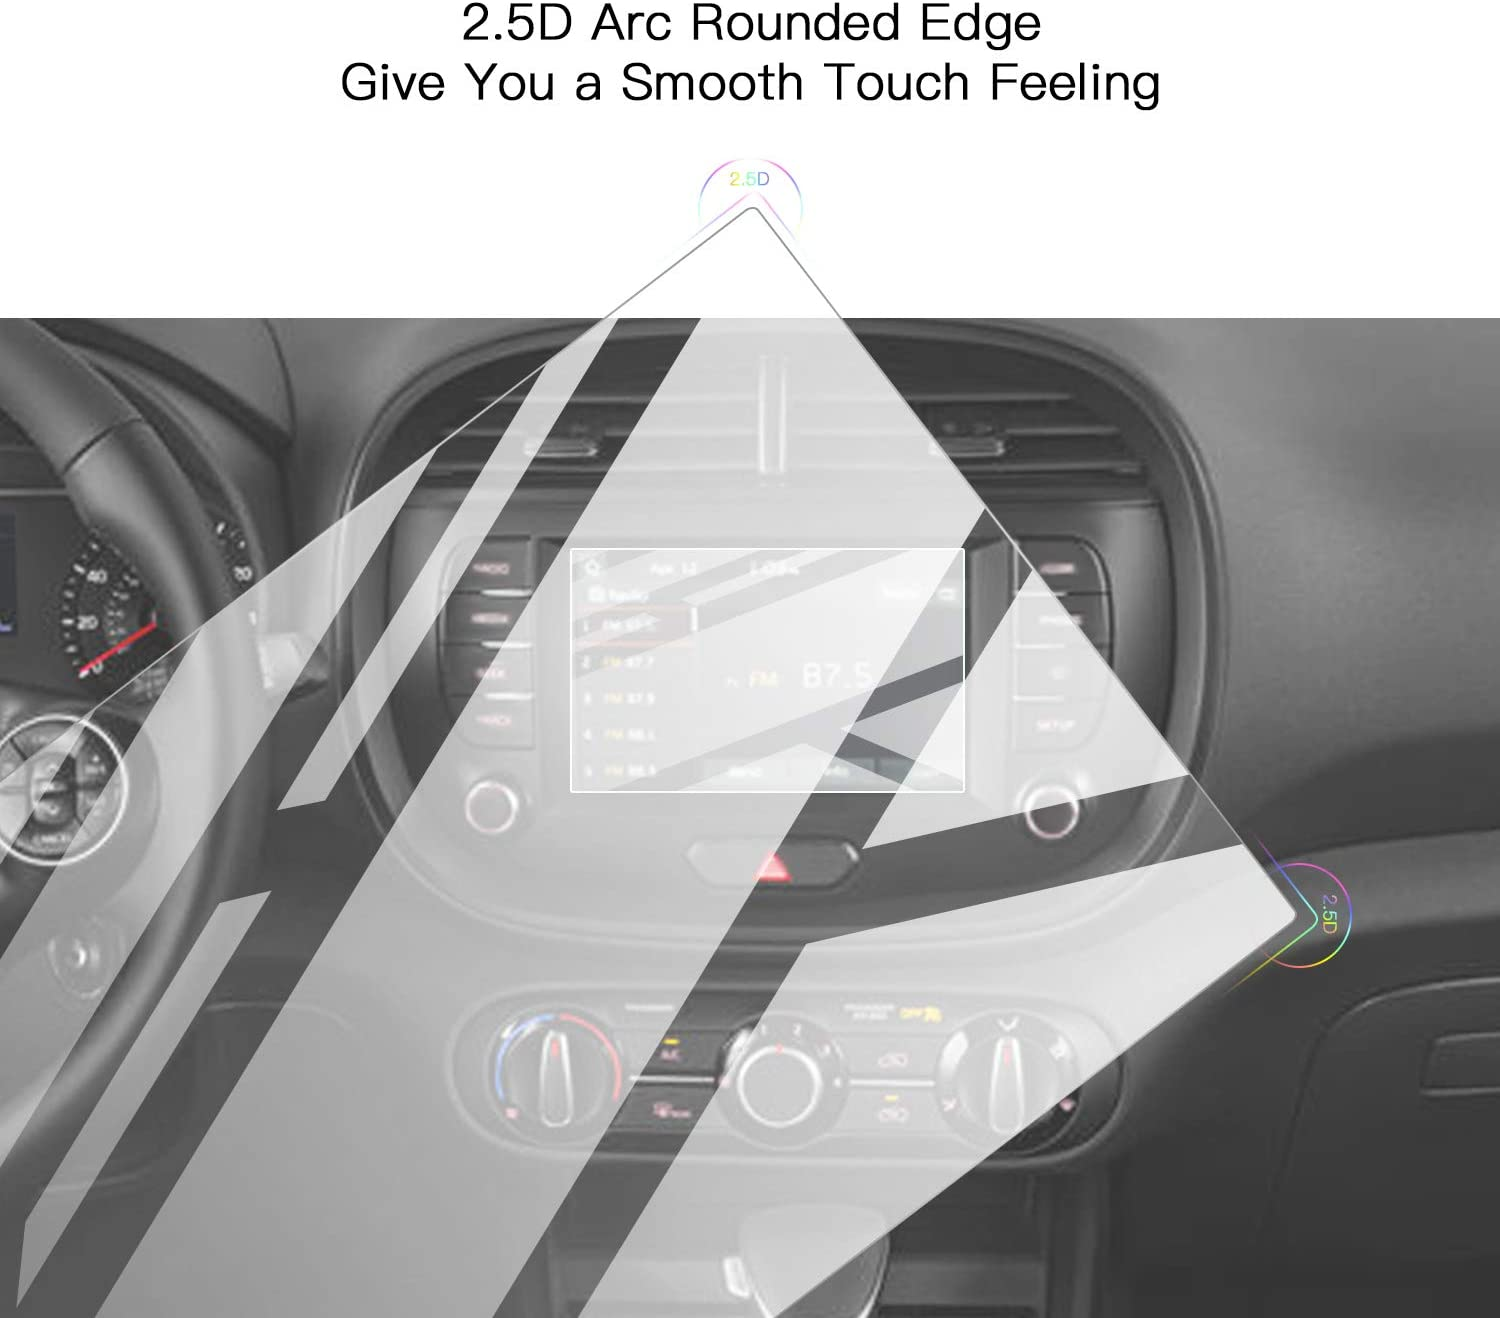 10.25In Screen Protector Film for 2020 2021 Soul EV Soul Booster Navigation Display Tempered Glass 9H Hardness Anti-Explosion /& Scratch HD Clear Kia GPS LCD Touch Screen Protector Foils